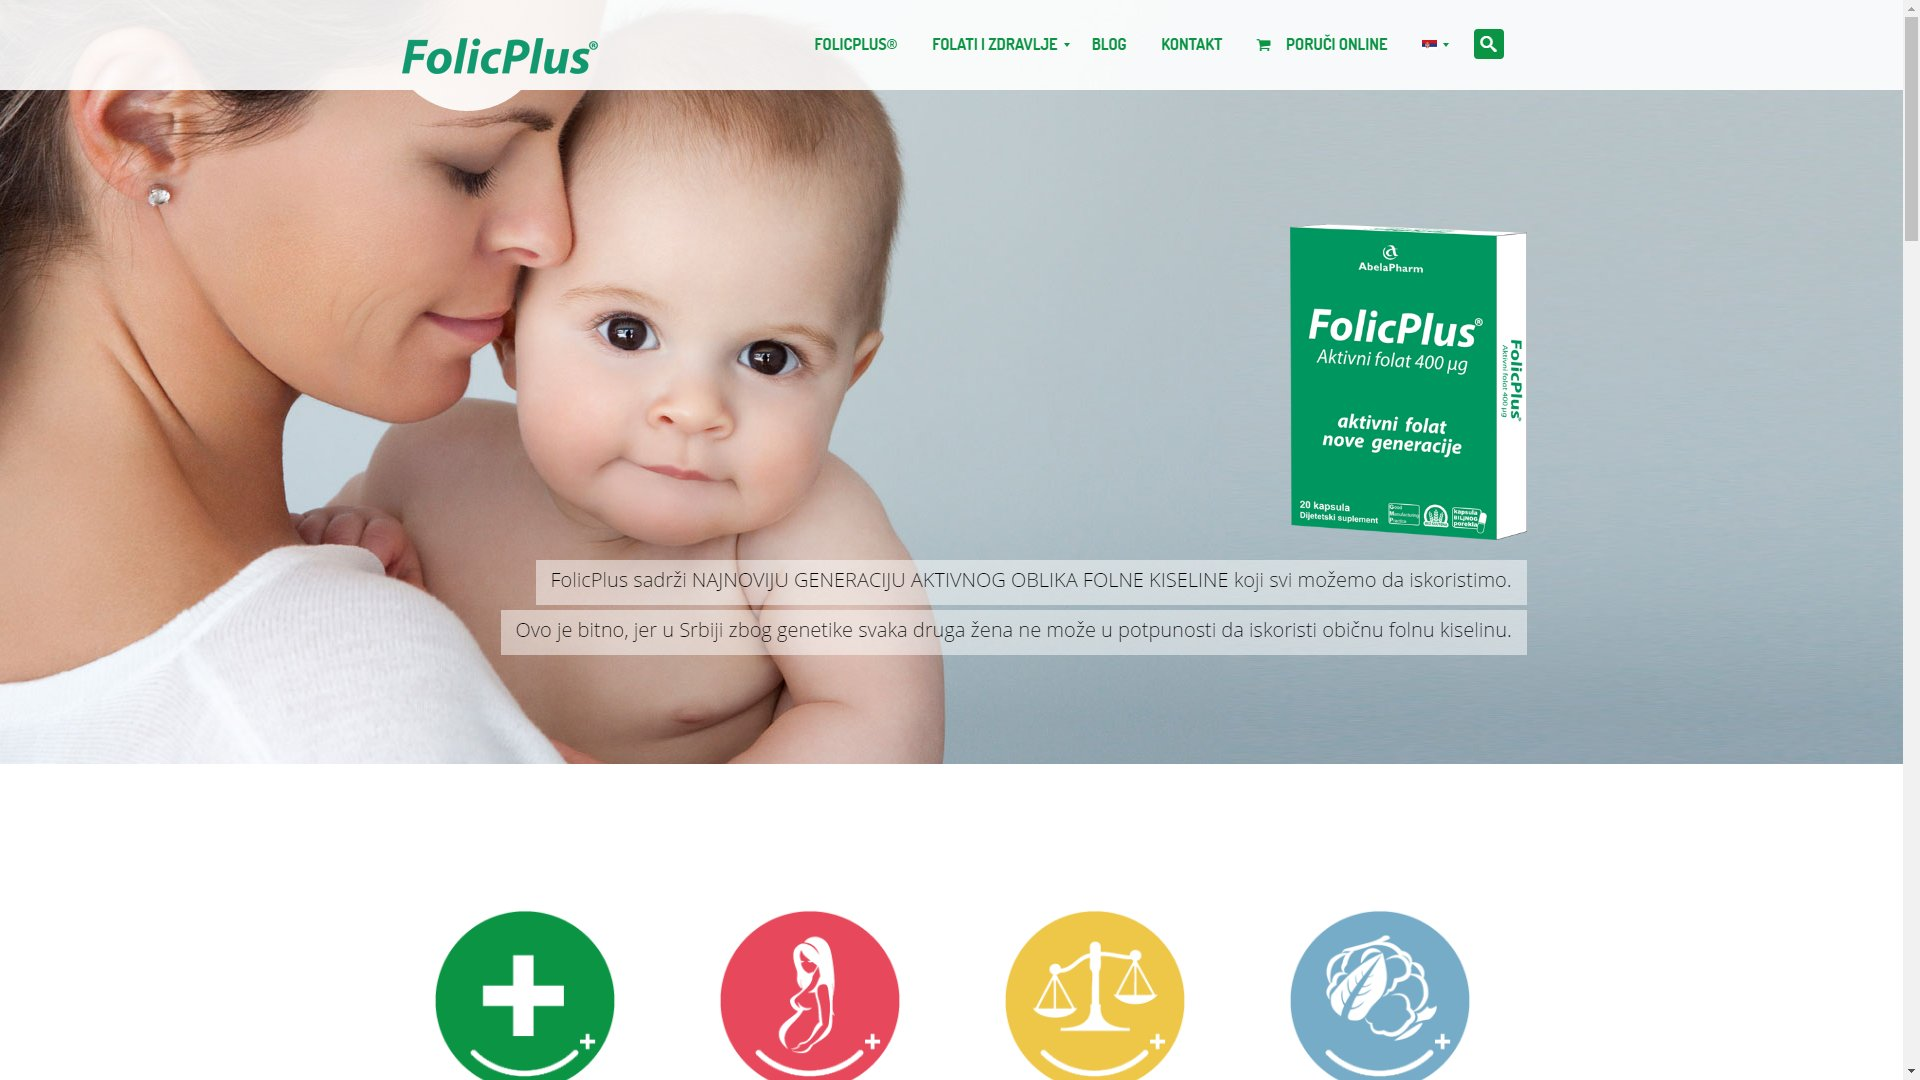 Folic Plus website - ss1